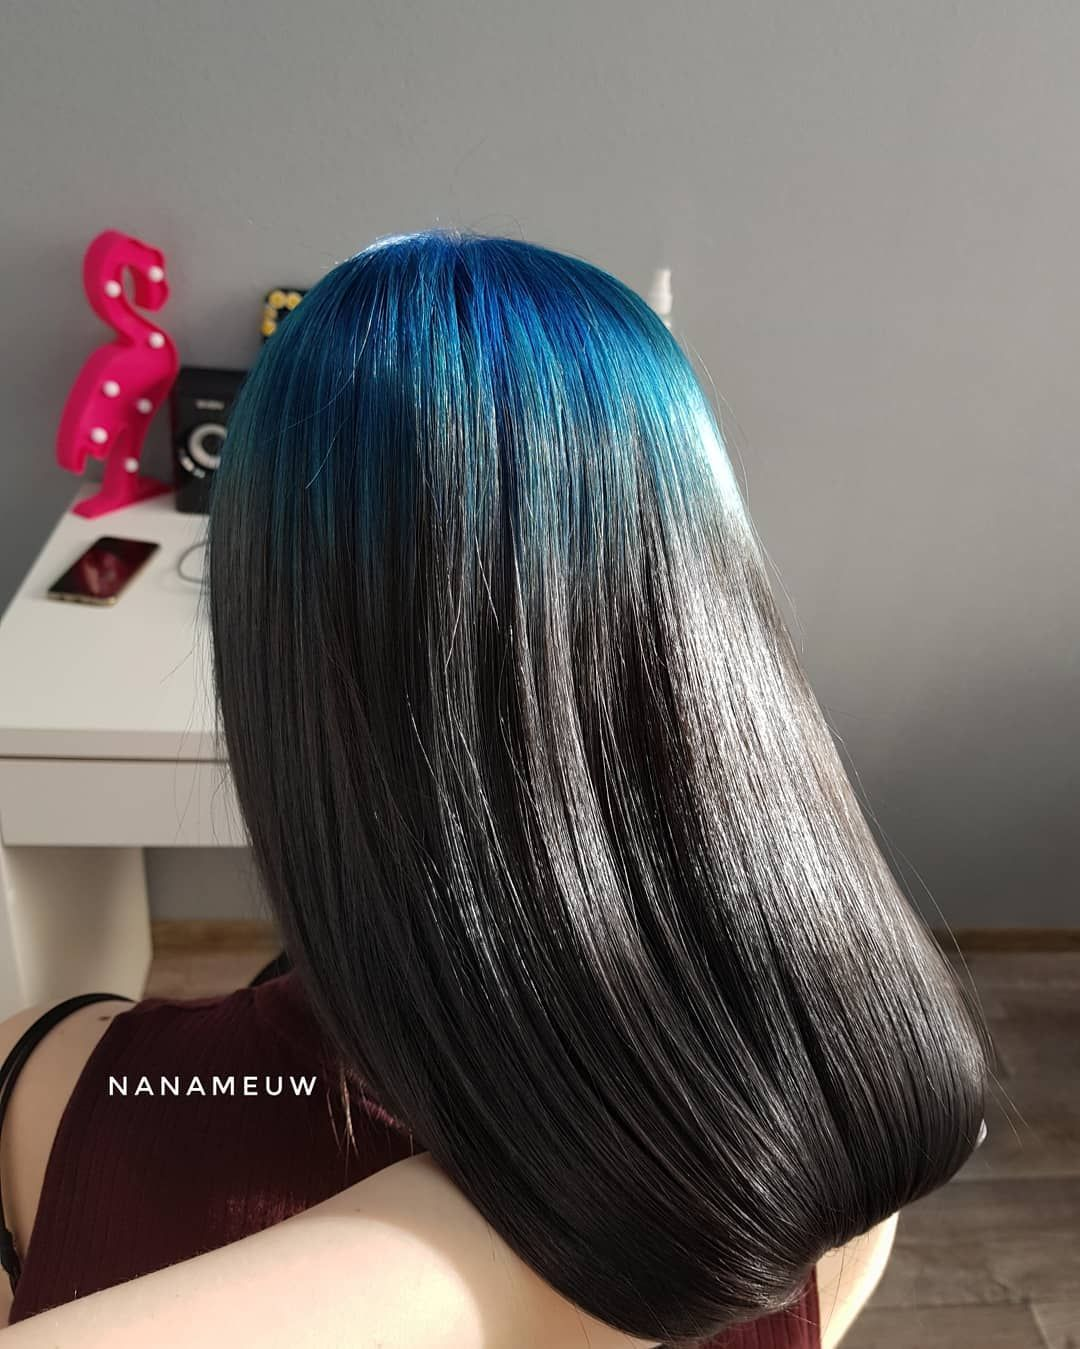 Blue Roots In 2020 Haircuts For Wavy Hair Hair Inspo Color Roots Hair